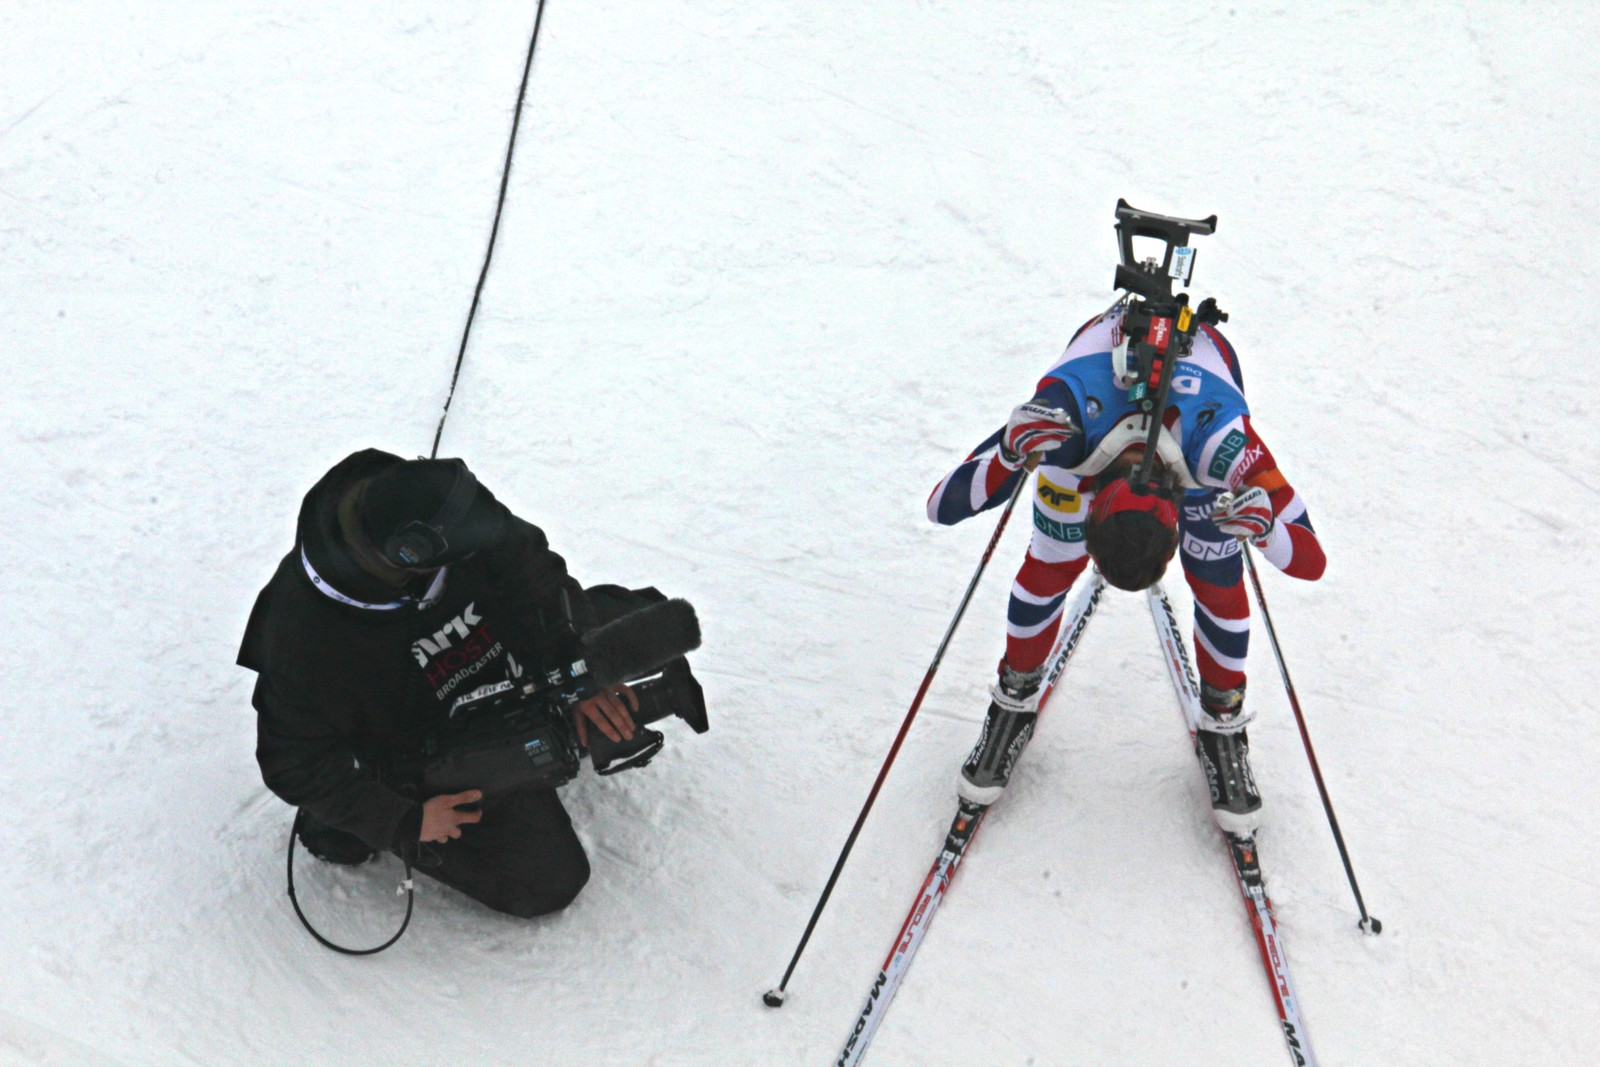 IBU Biathlon World Championships Oslo 2016: Sprint events Saturday 5 March:  Norway's Tiril Eckhoff, winner of the women's sprint event, with Host Broadcaster cameraman in finish area.